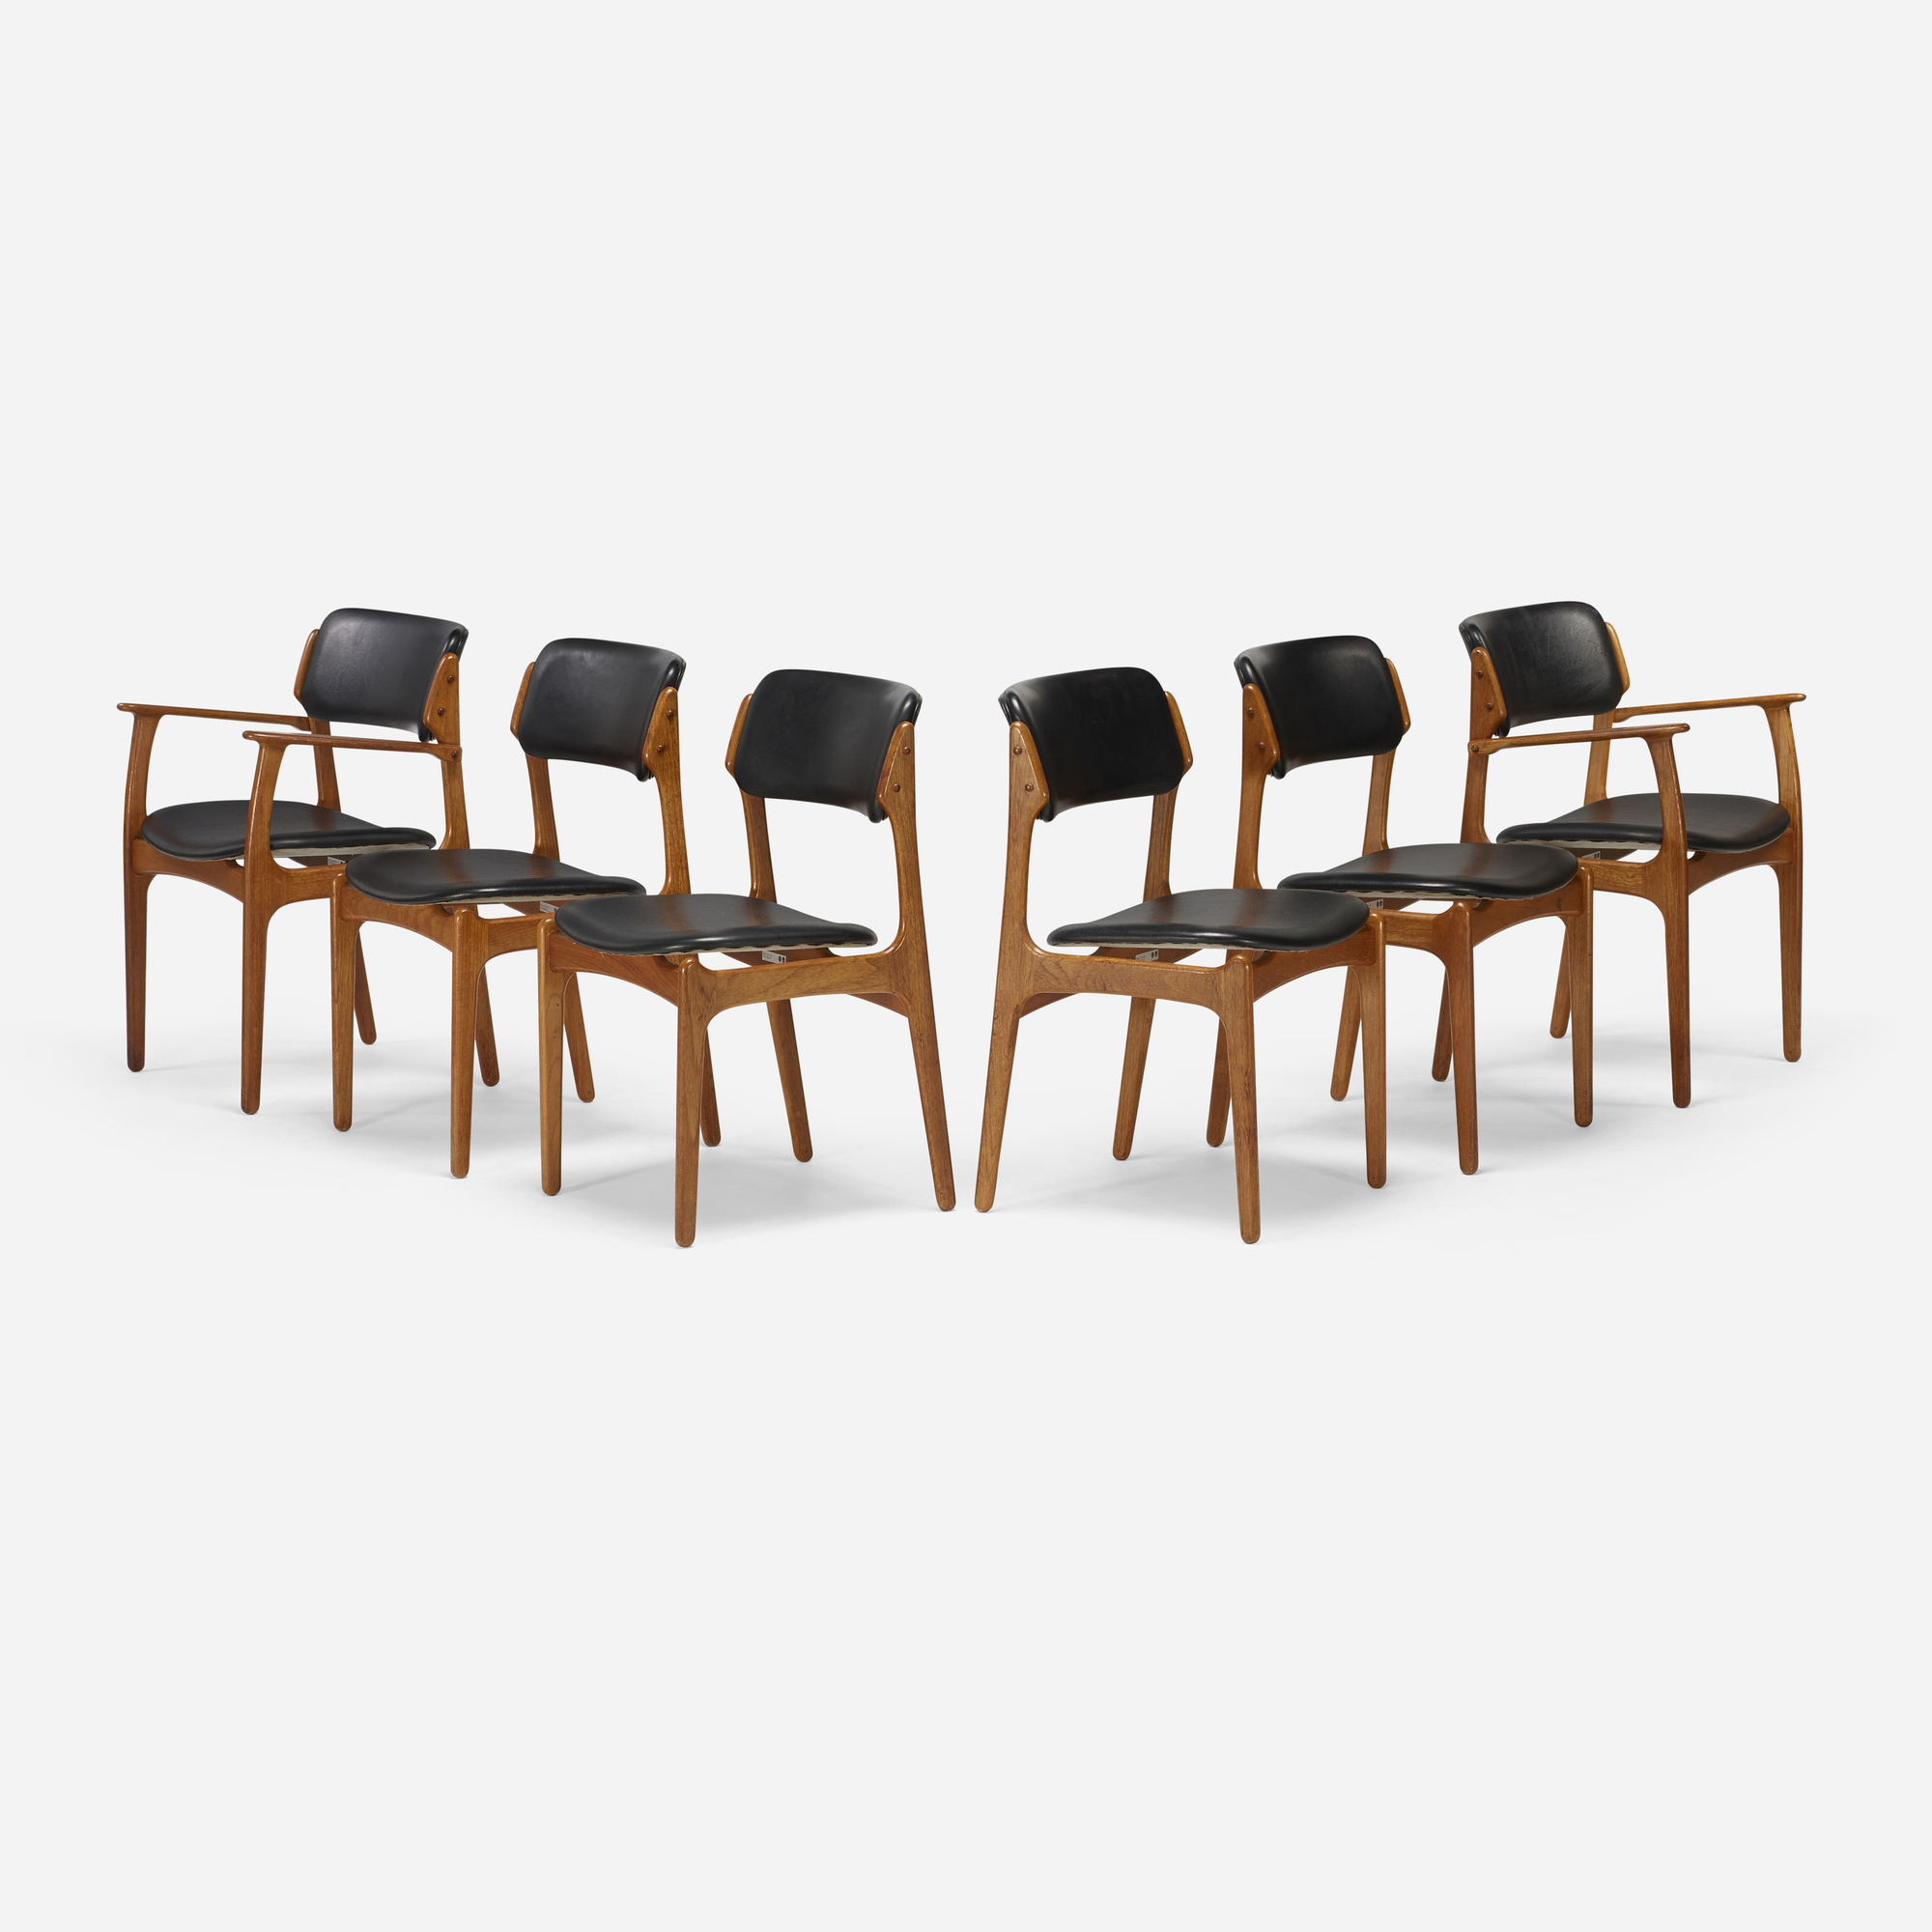 187: Erik Buck / dining chairs model OD 49, set of six (2 of 4)